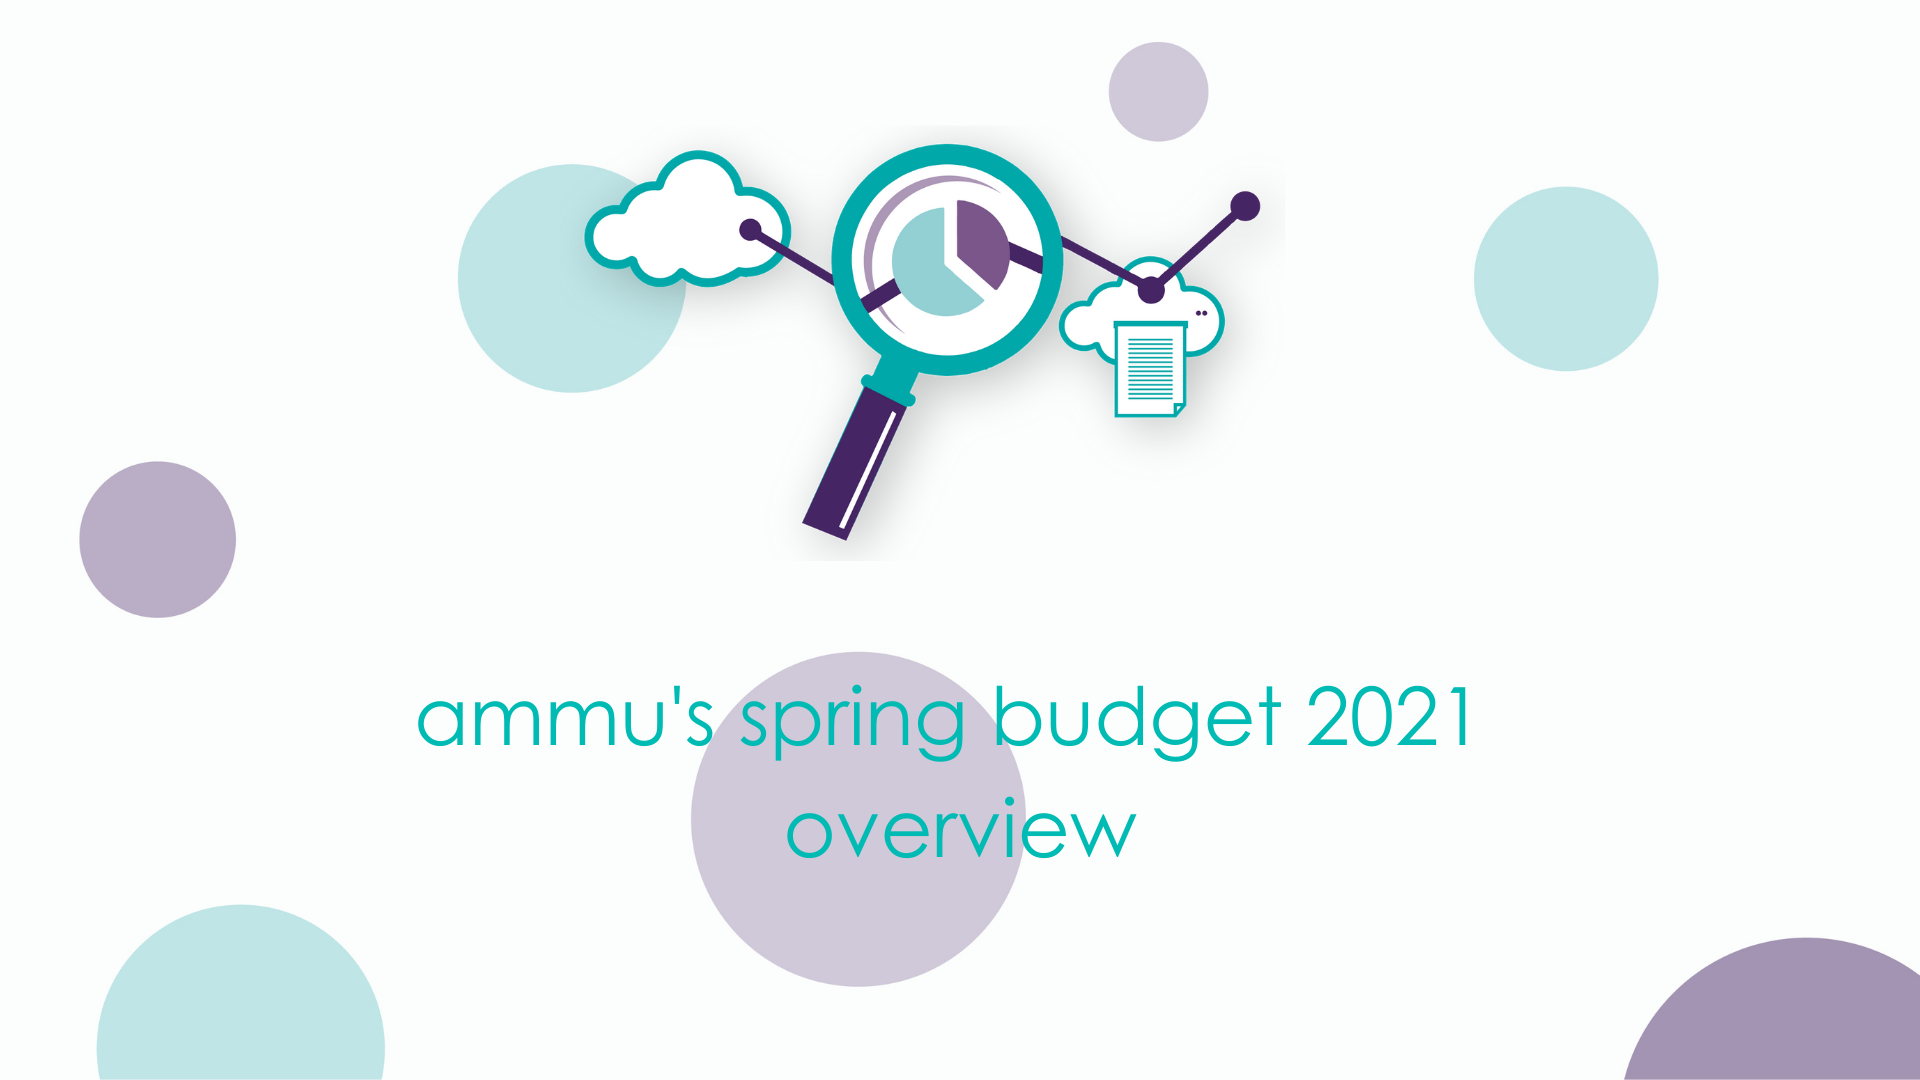 Ammu's overview of the Spring Budget